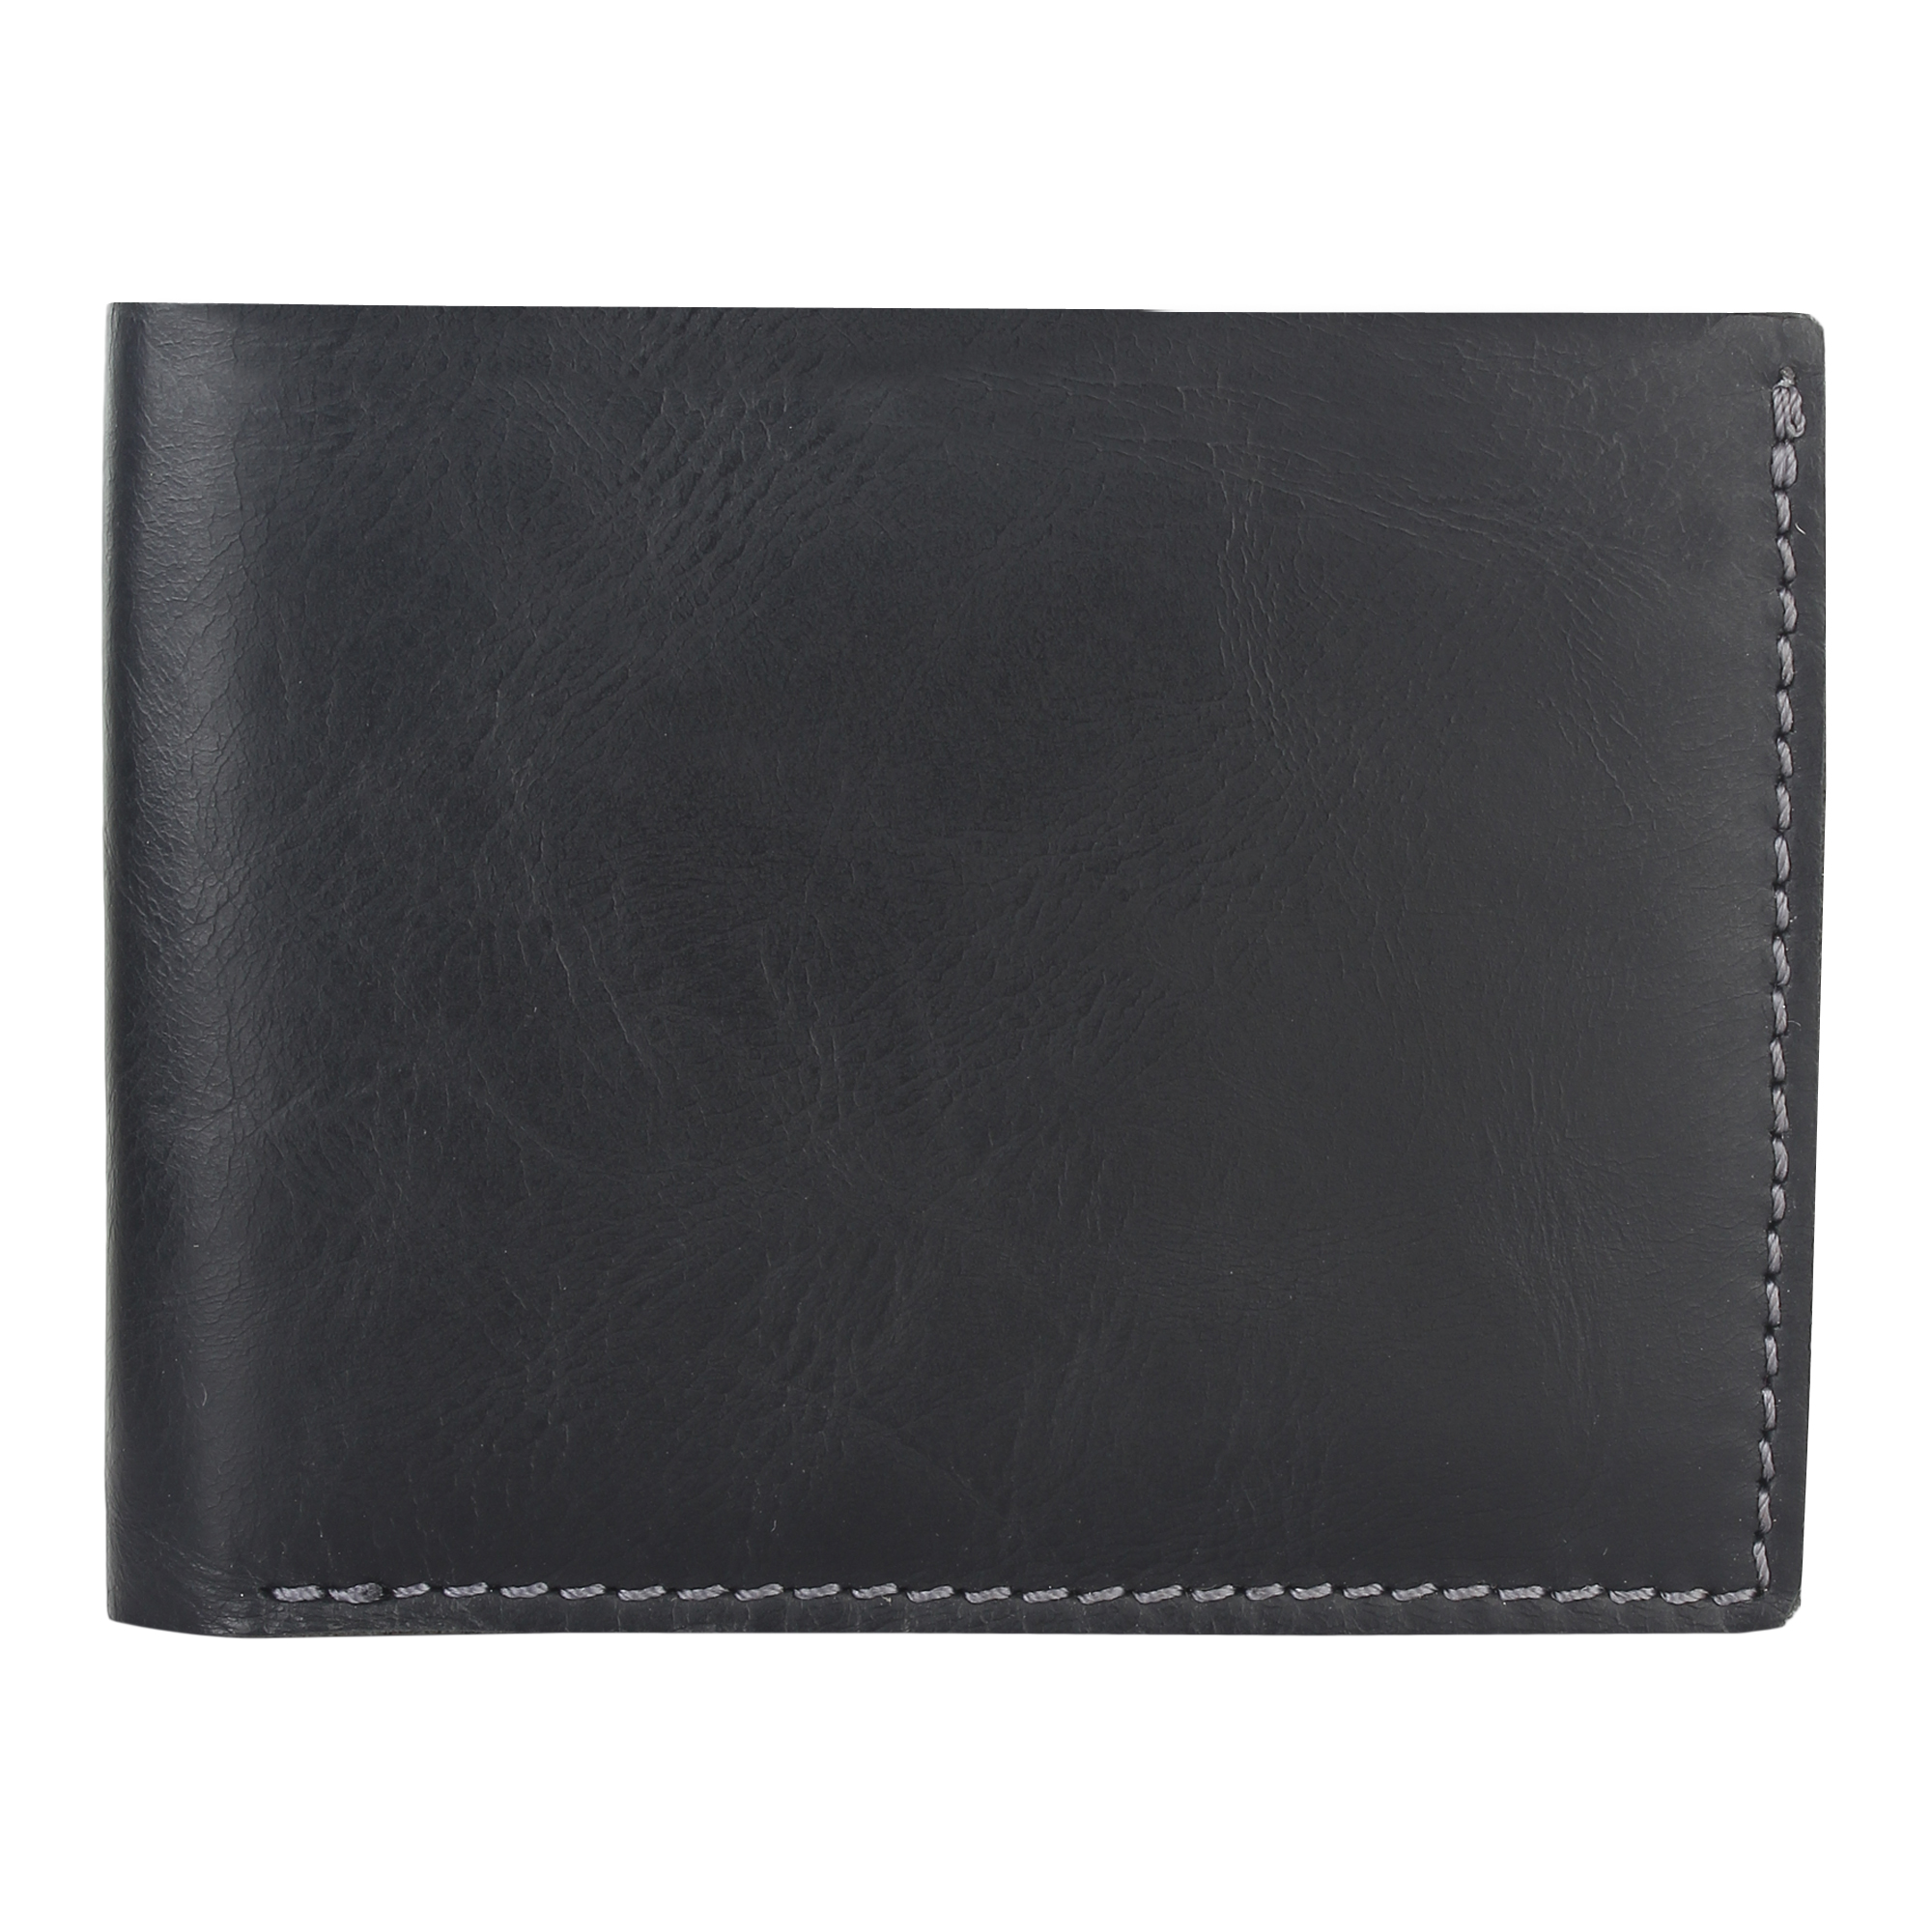 Leather Wallets Manufacturers in Bangalore, Leather Wallets Suppliers in Bangalore, Leather Wallets Wholesalers in Bangalore, Leather Wallets Traders in Bangalore